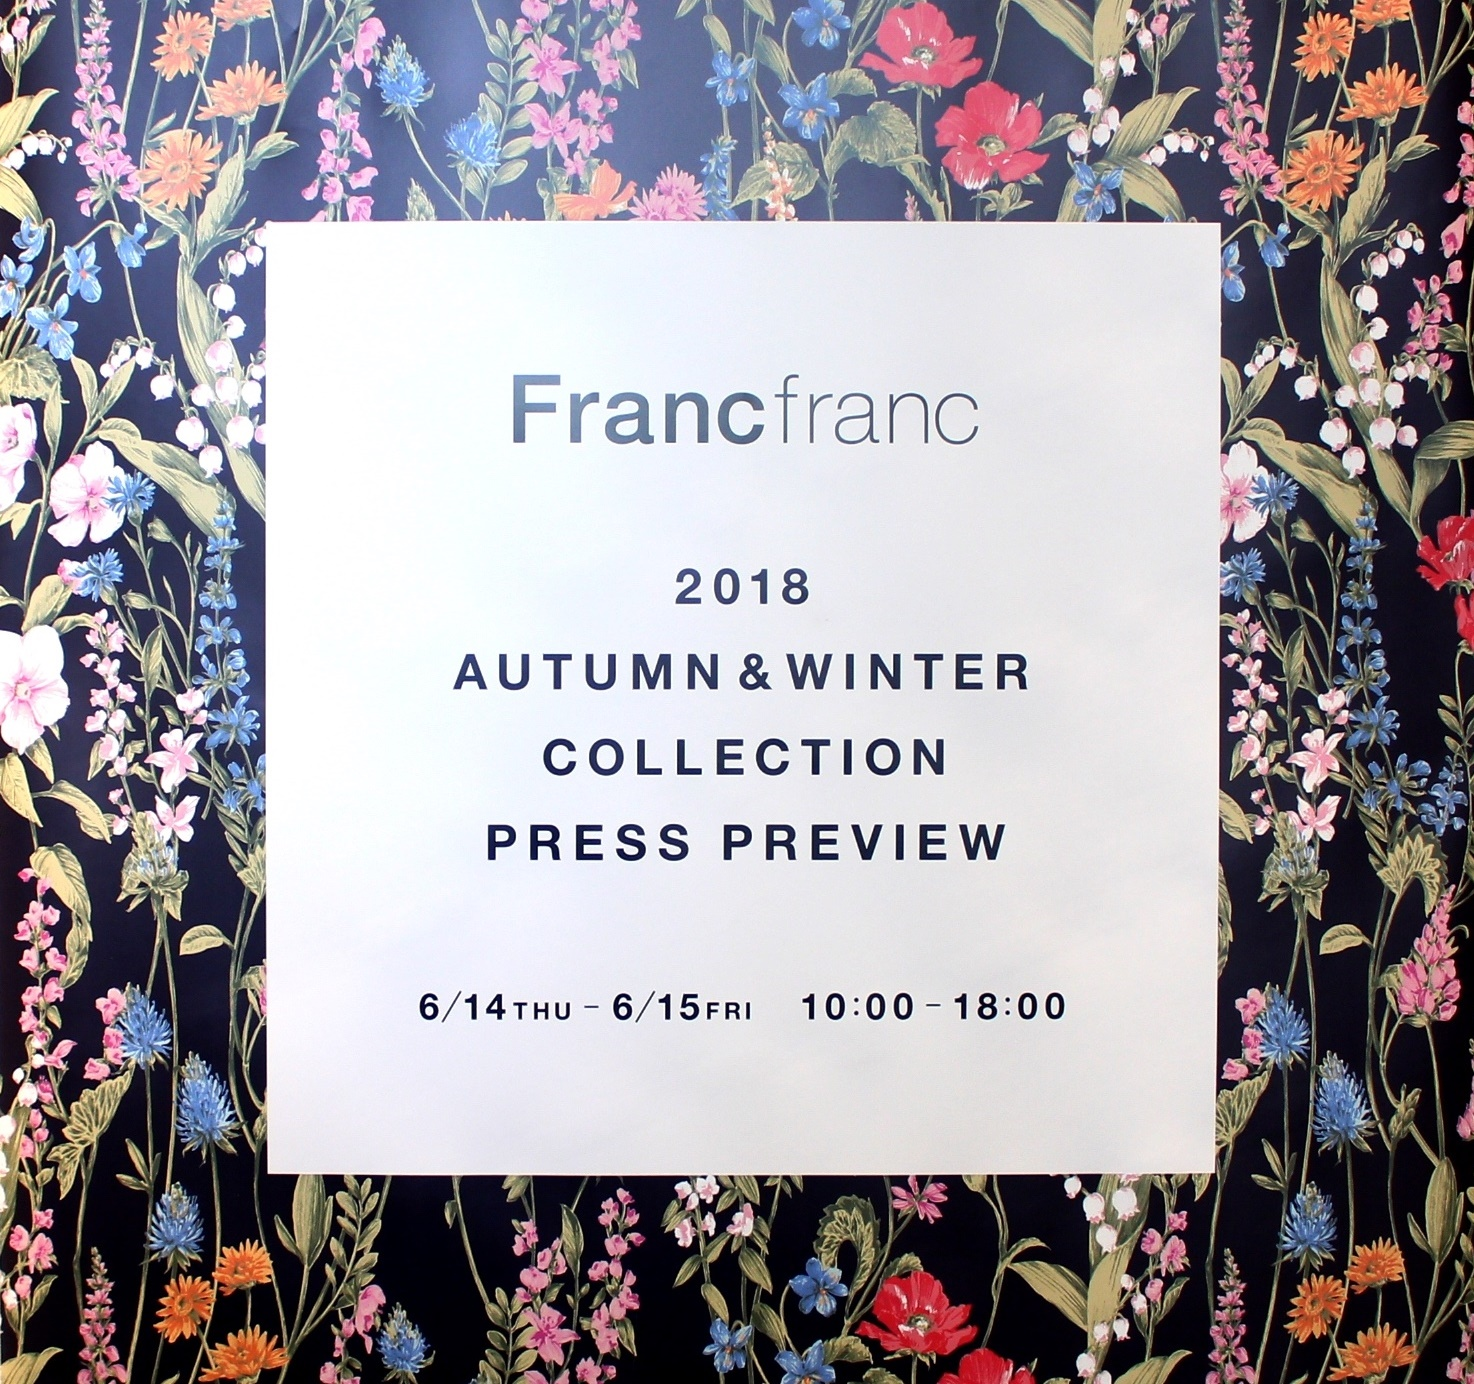 「Francfranc」/AUTUMN&WINTER COLLECTIONの新作商品情報